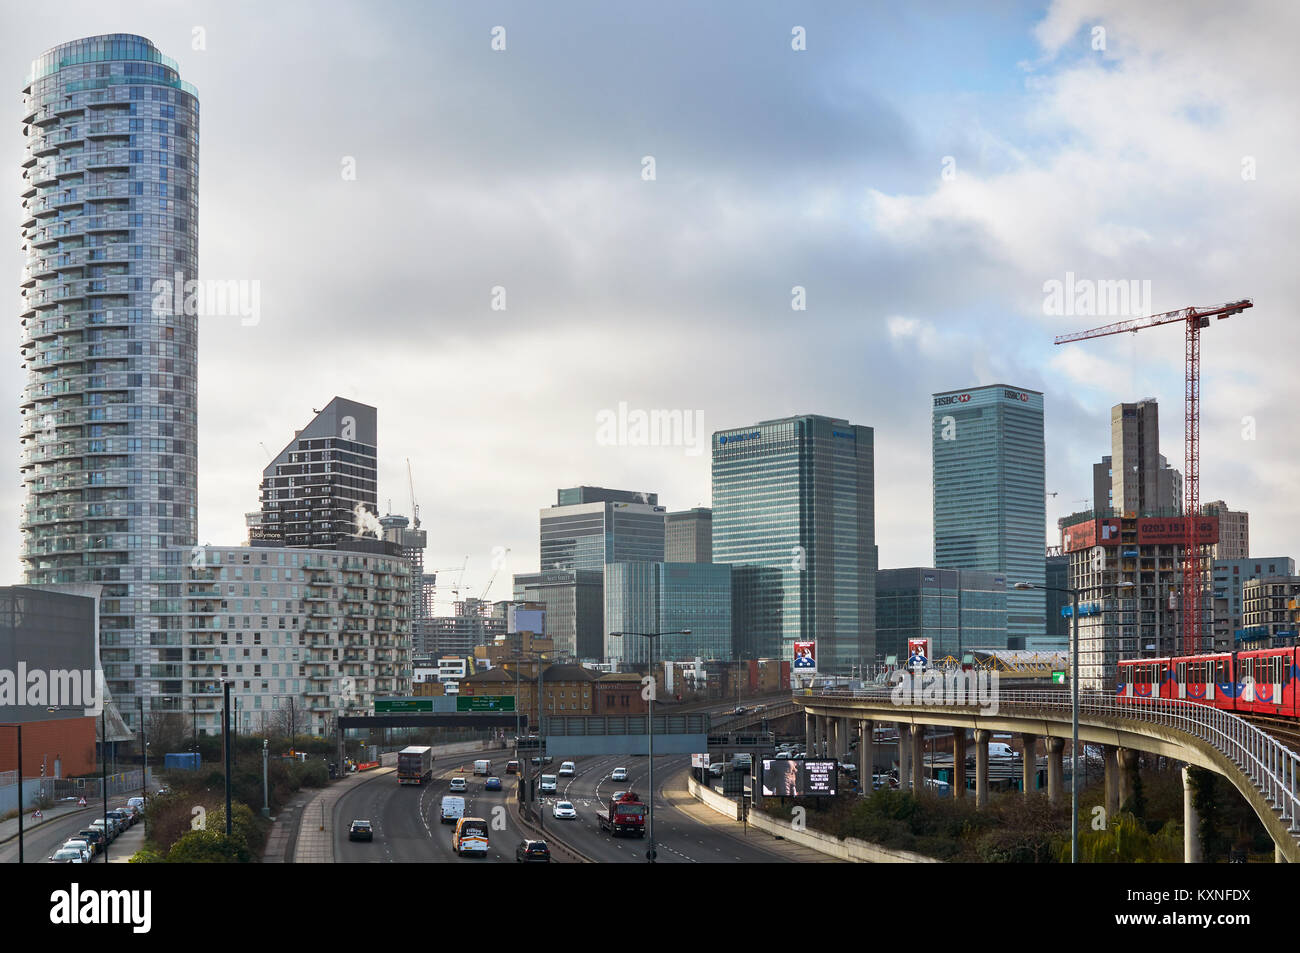 Canary Wharf and new apartment buildings, East London UK, viewed from the East - Stock Image